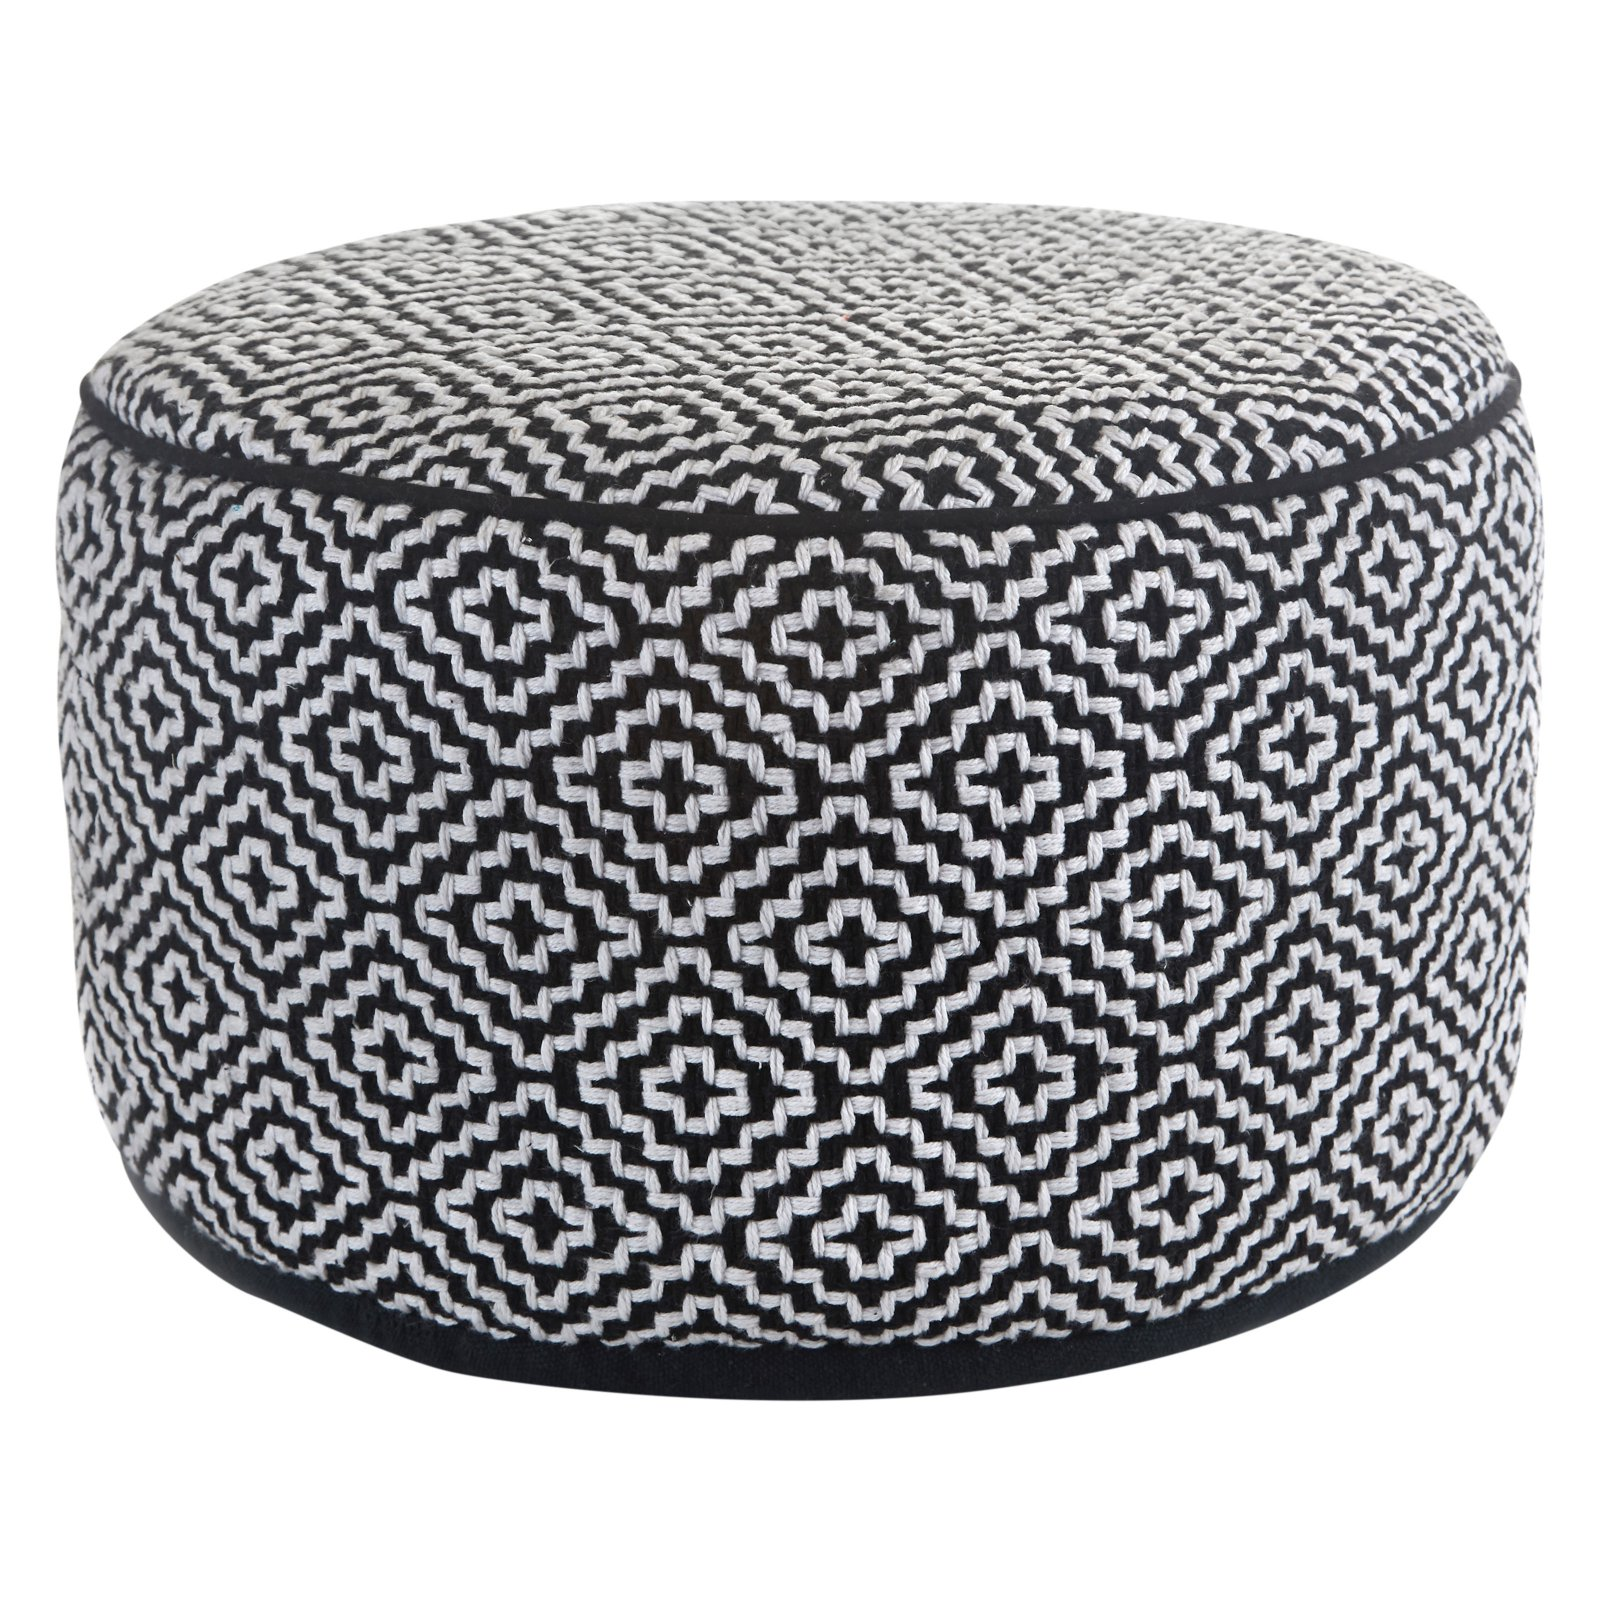 Klear Vu Maison Black and White Wool Round Ottoman Pouf